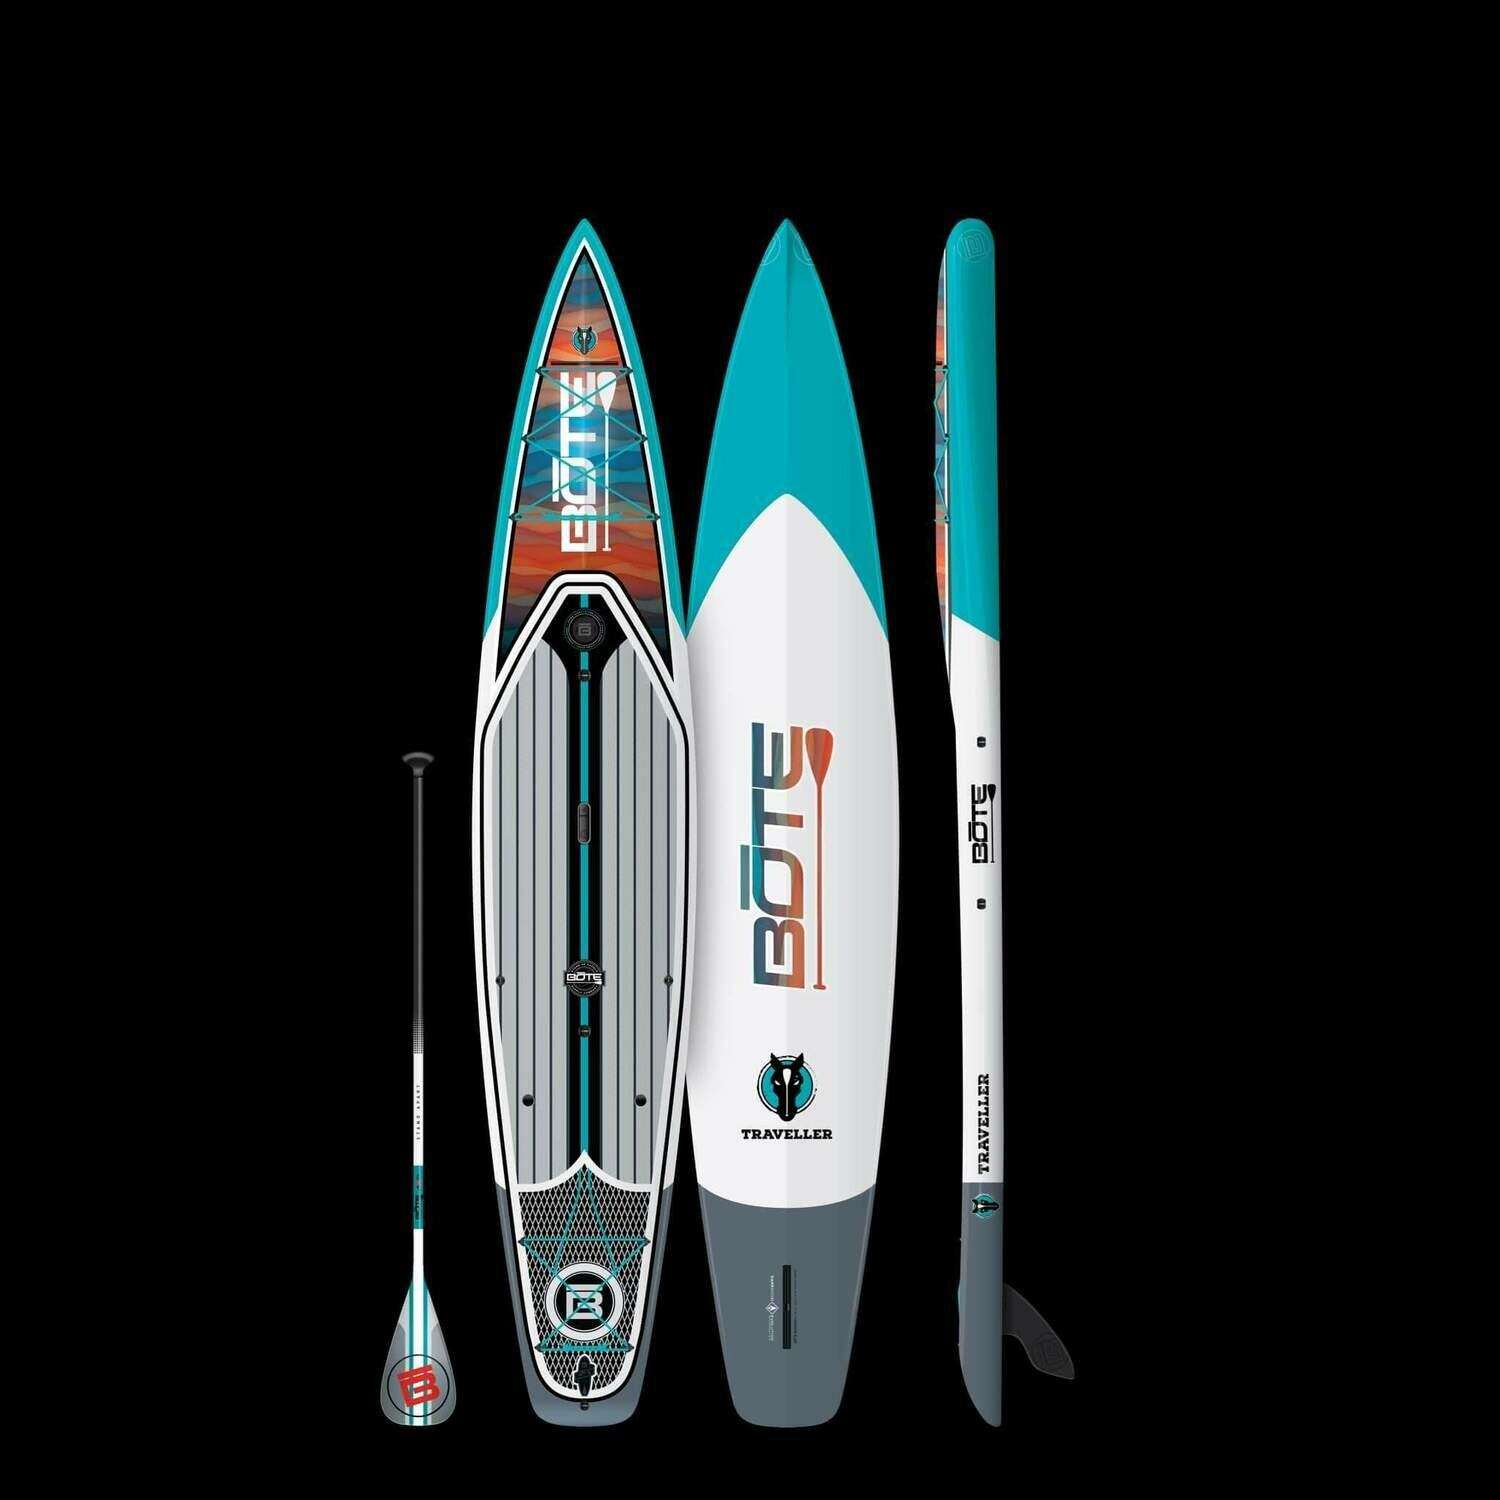 Bote Traveller Native Epoxy Board 12'6""